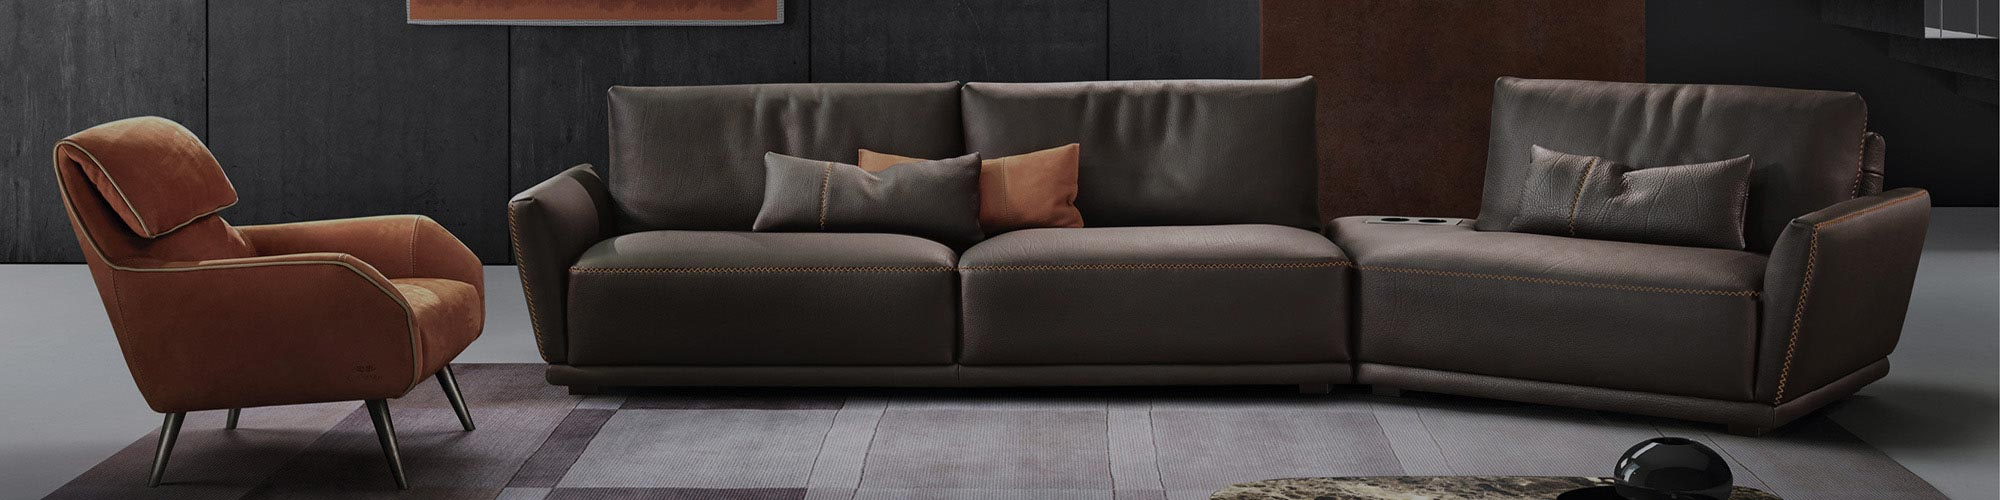 Quality Contemporary Sofas Made In Italy, Germany & Holland.